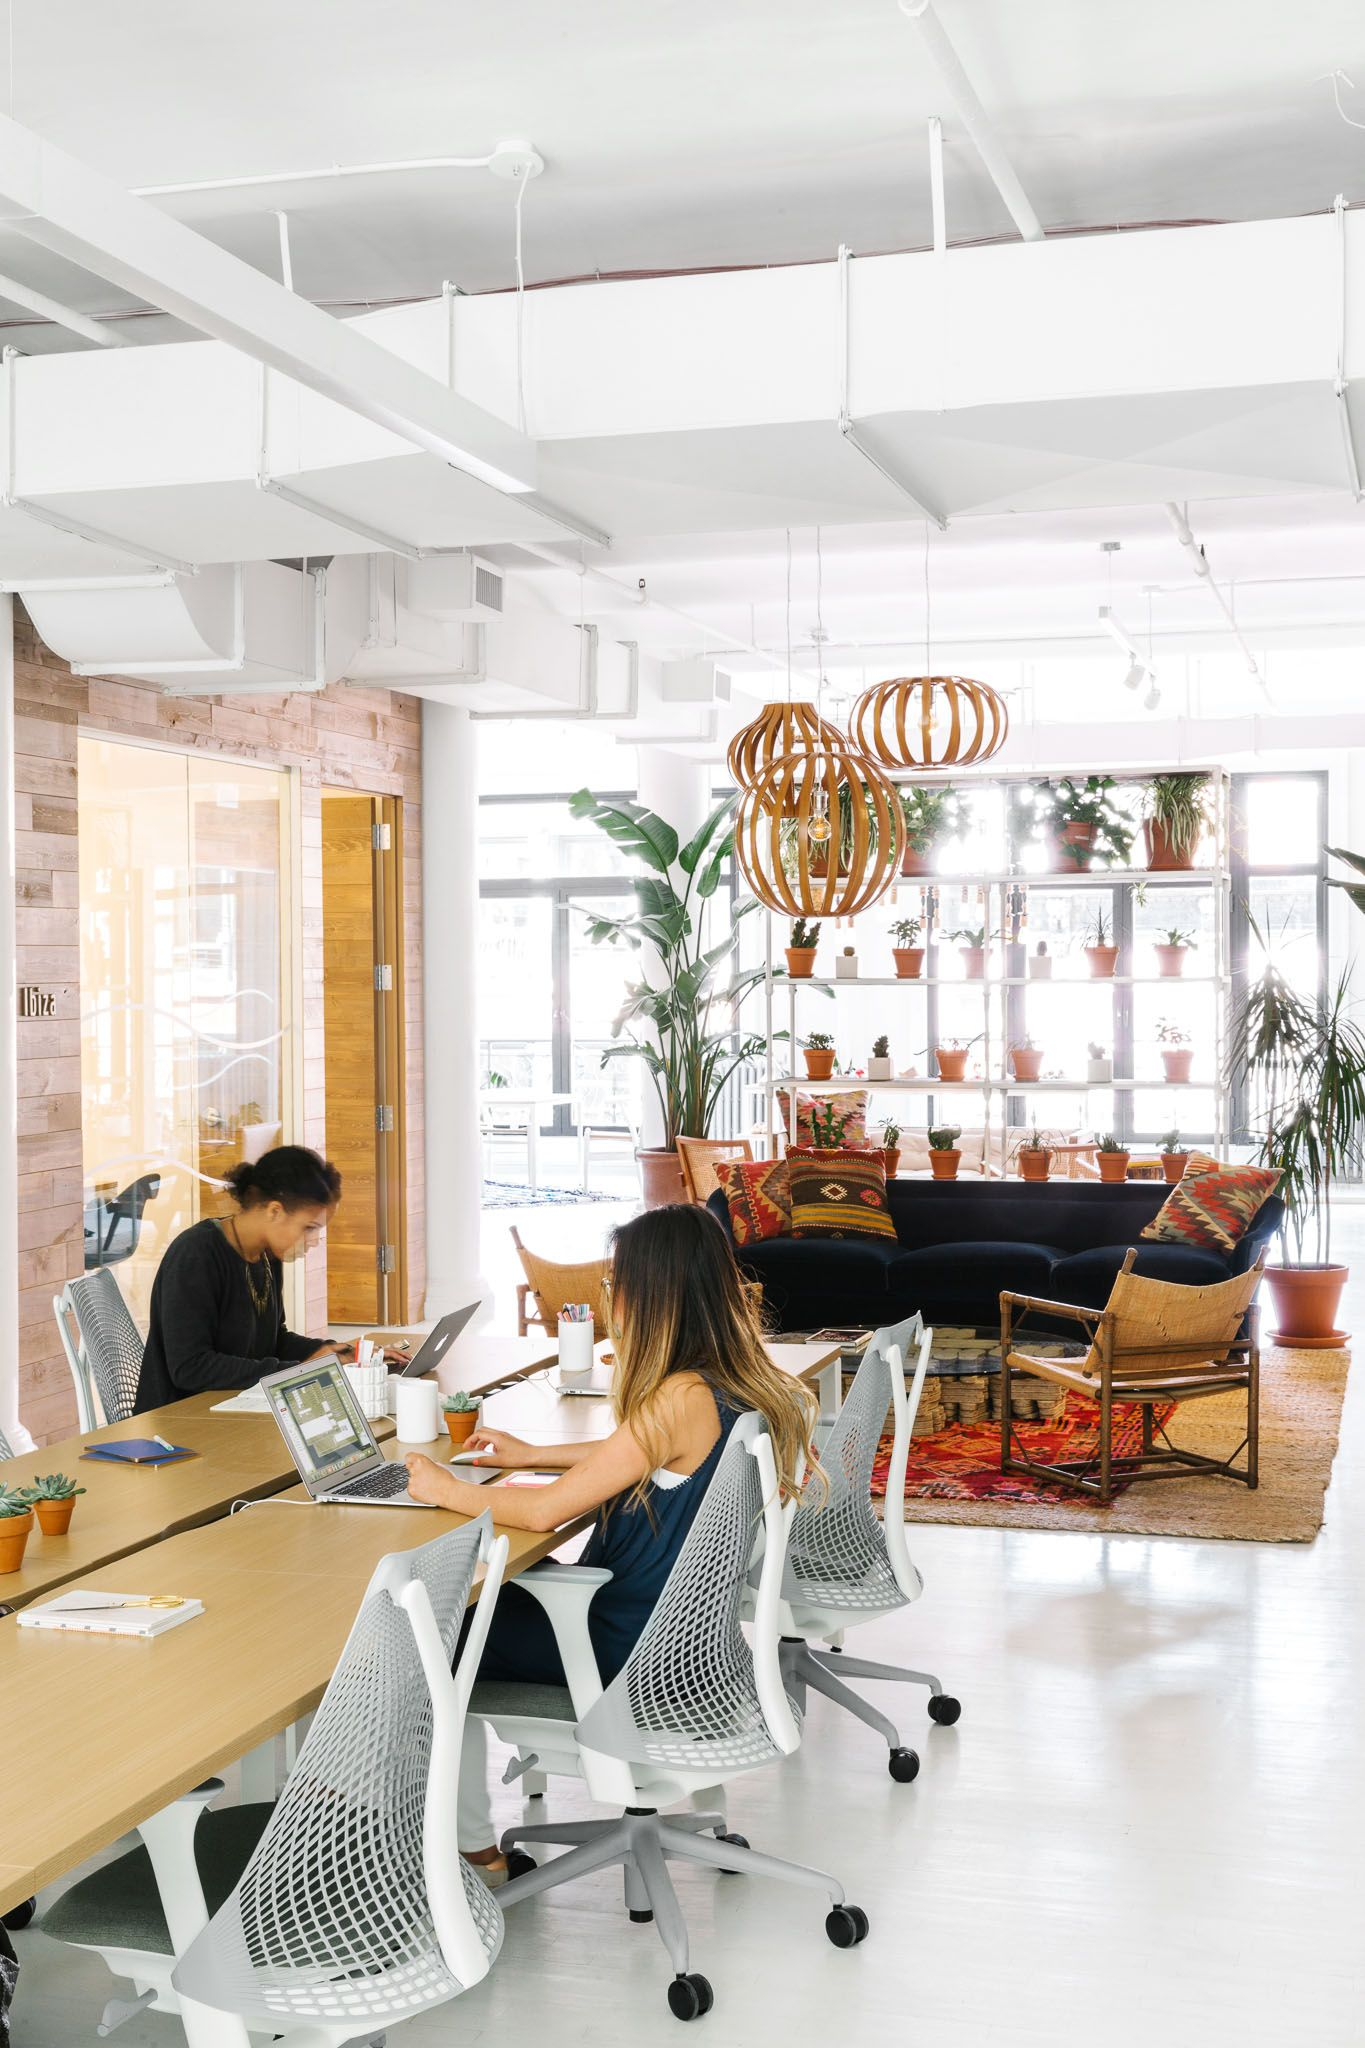 Cool Office Interiors Ideas from i.pinimg.com